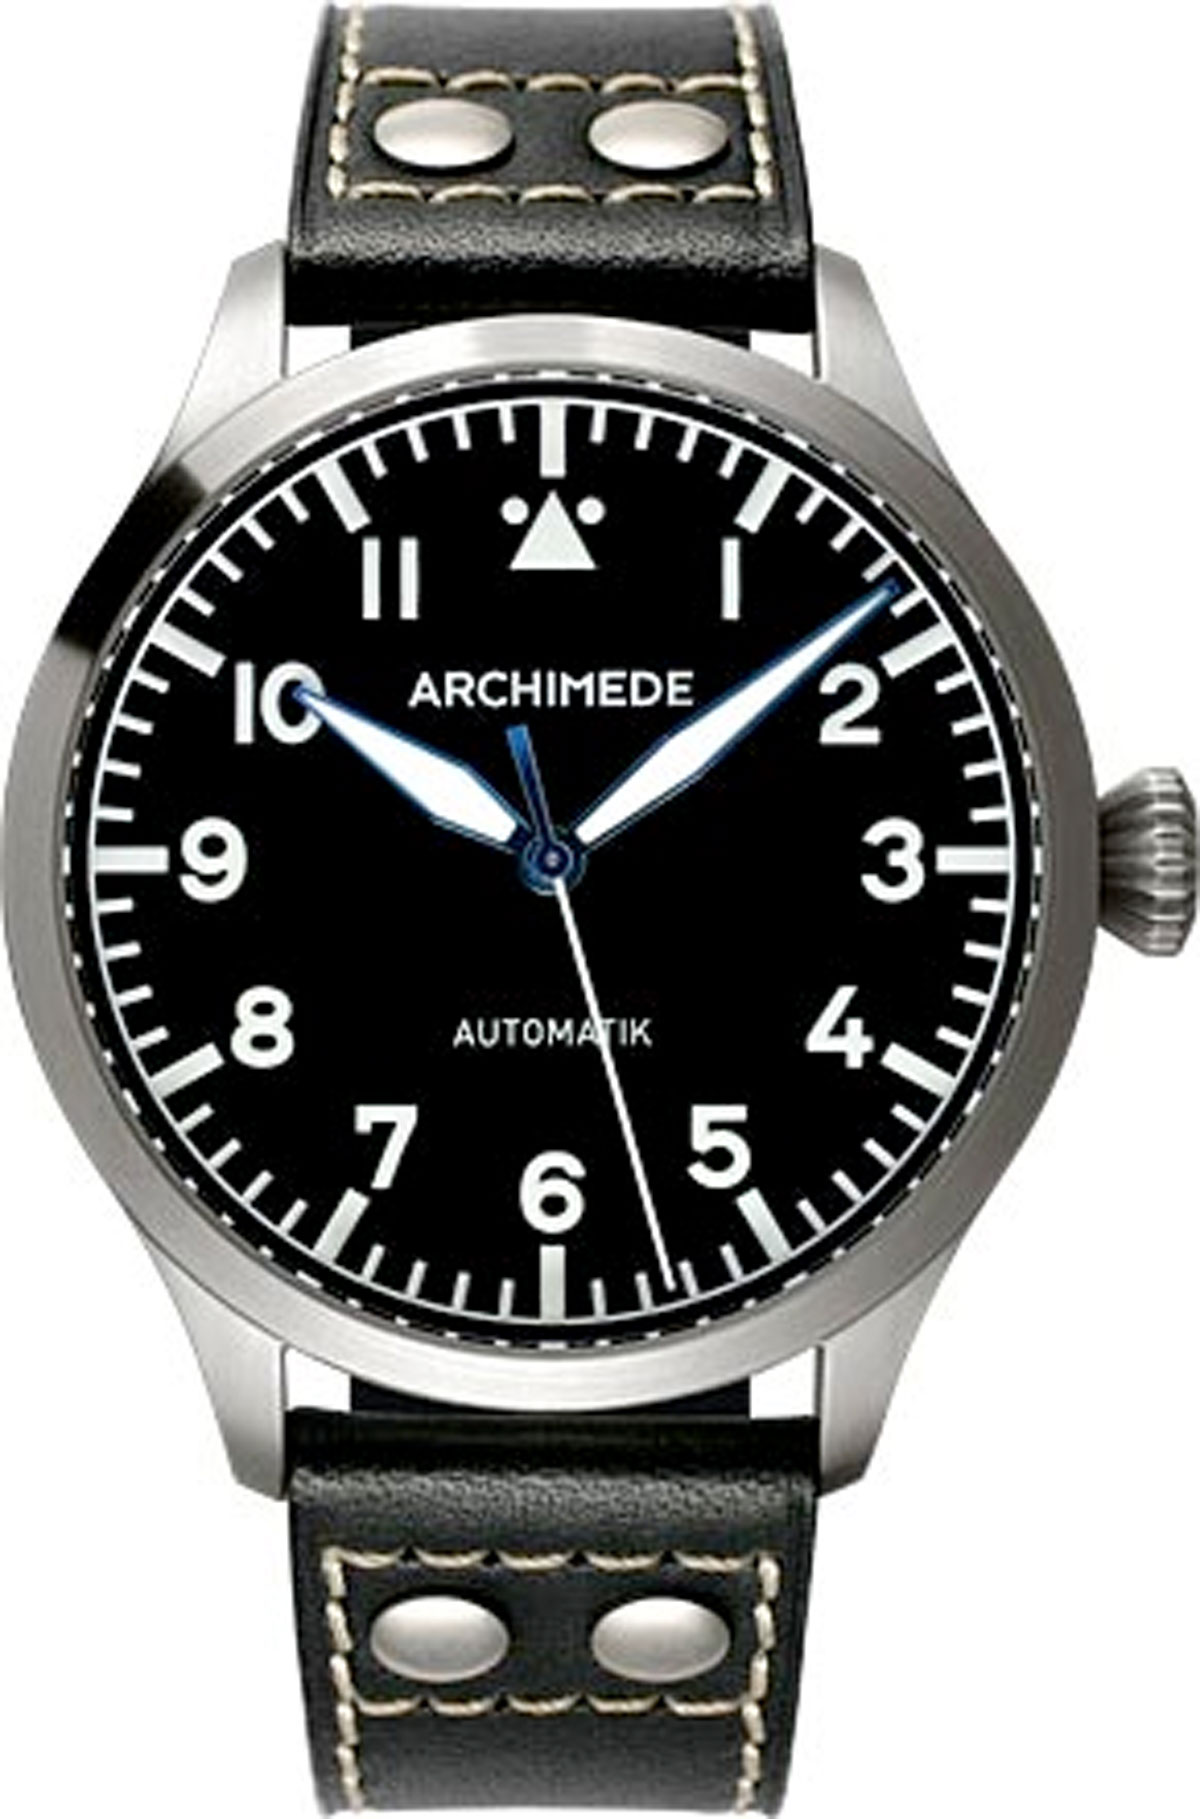 Watches Images